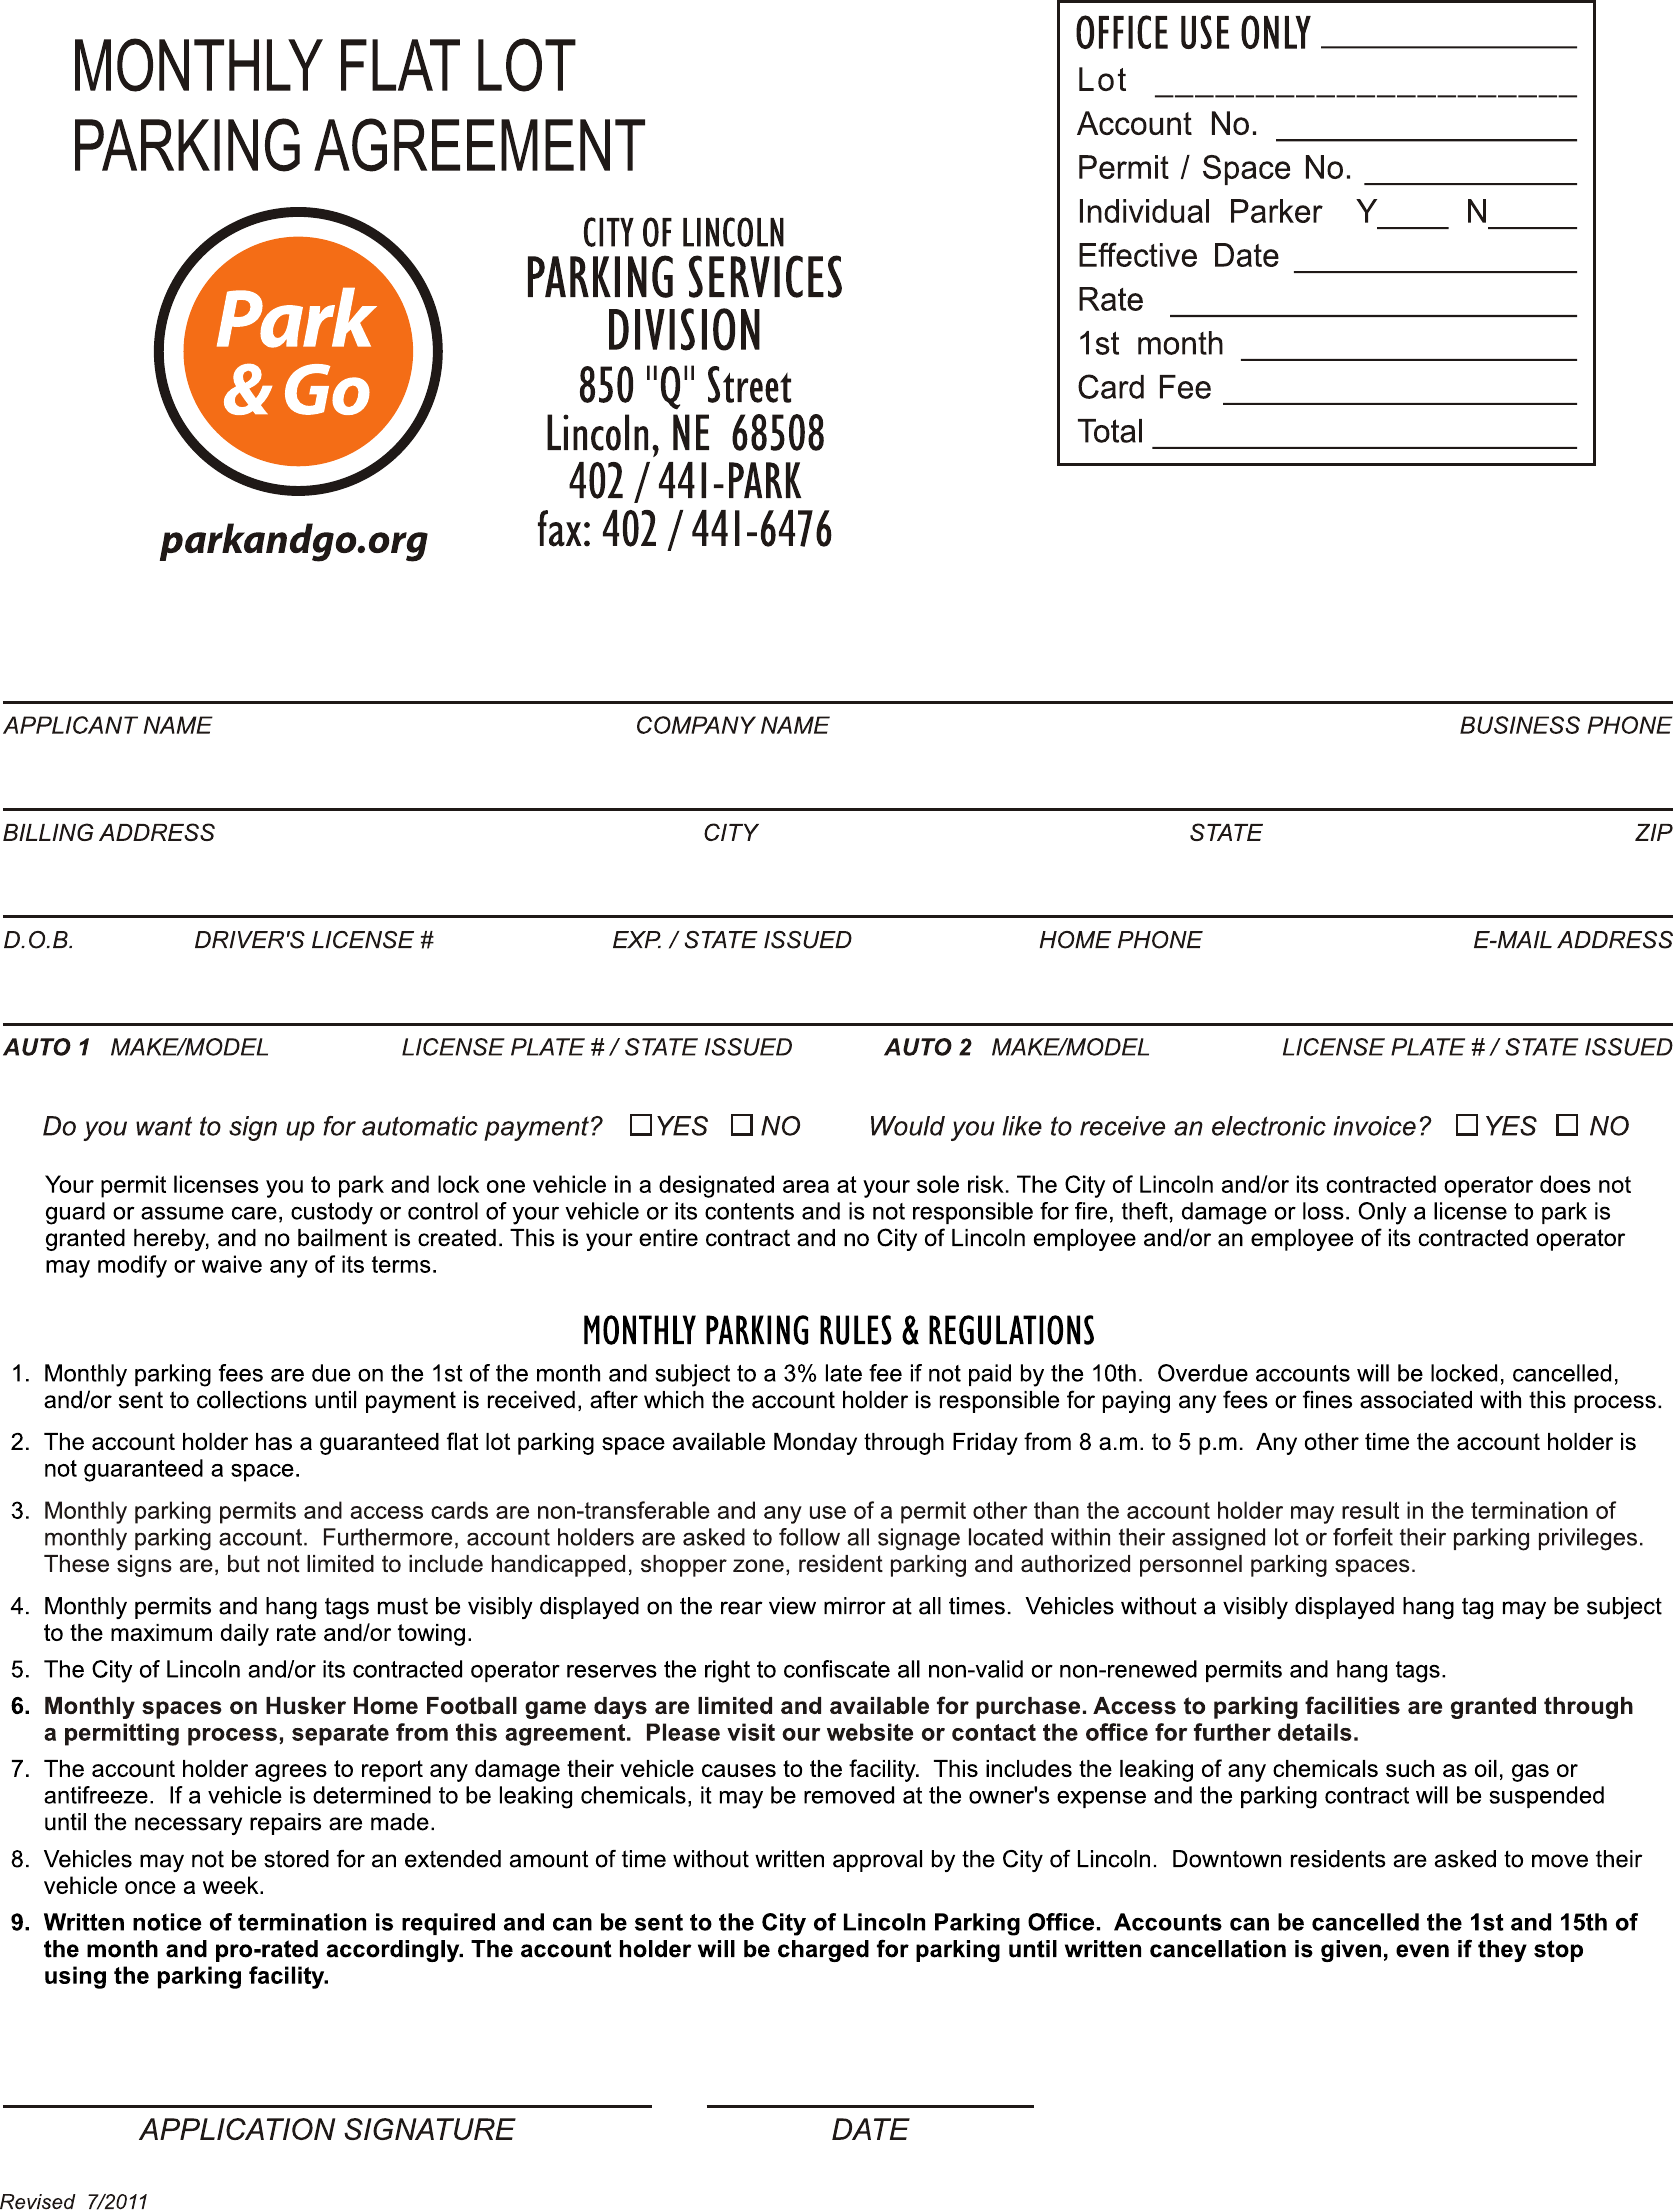 Sample Monthly Flat Lot Parking Agreement Free Download – Parking Agreement Template